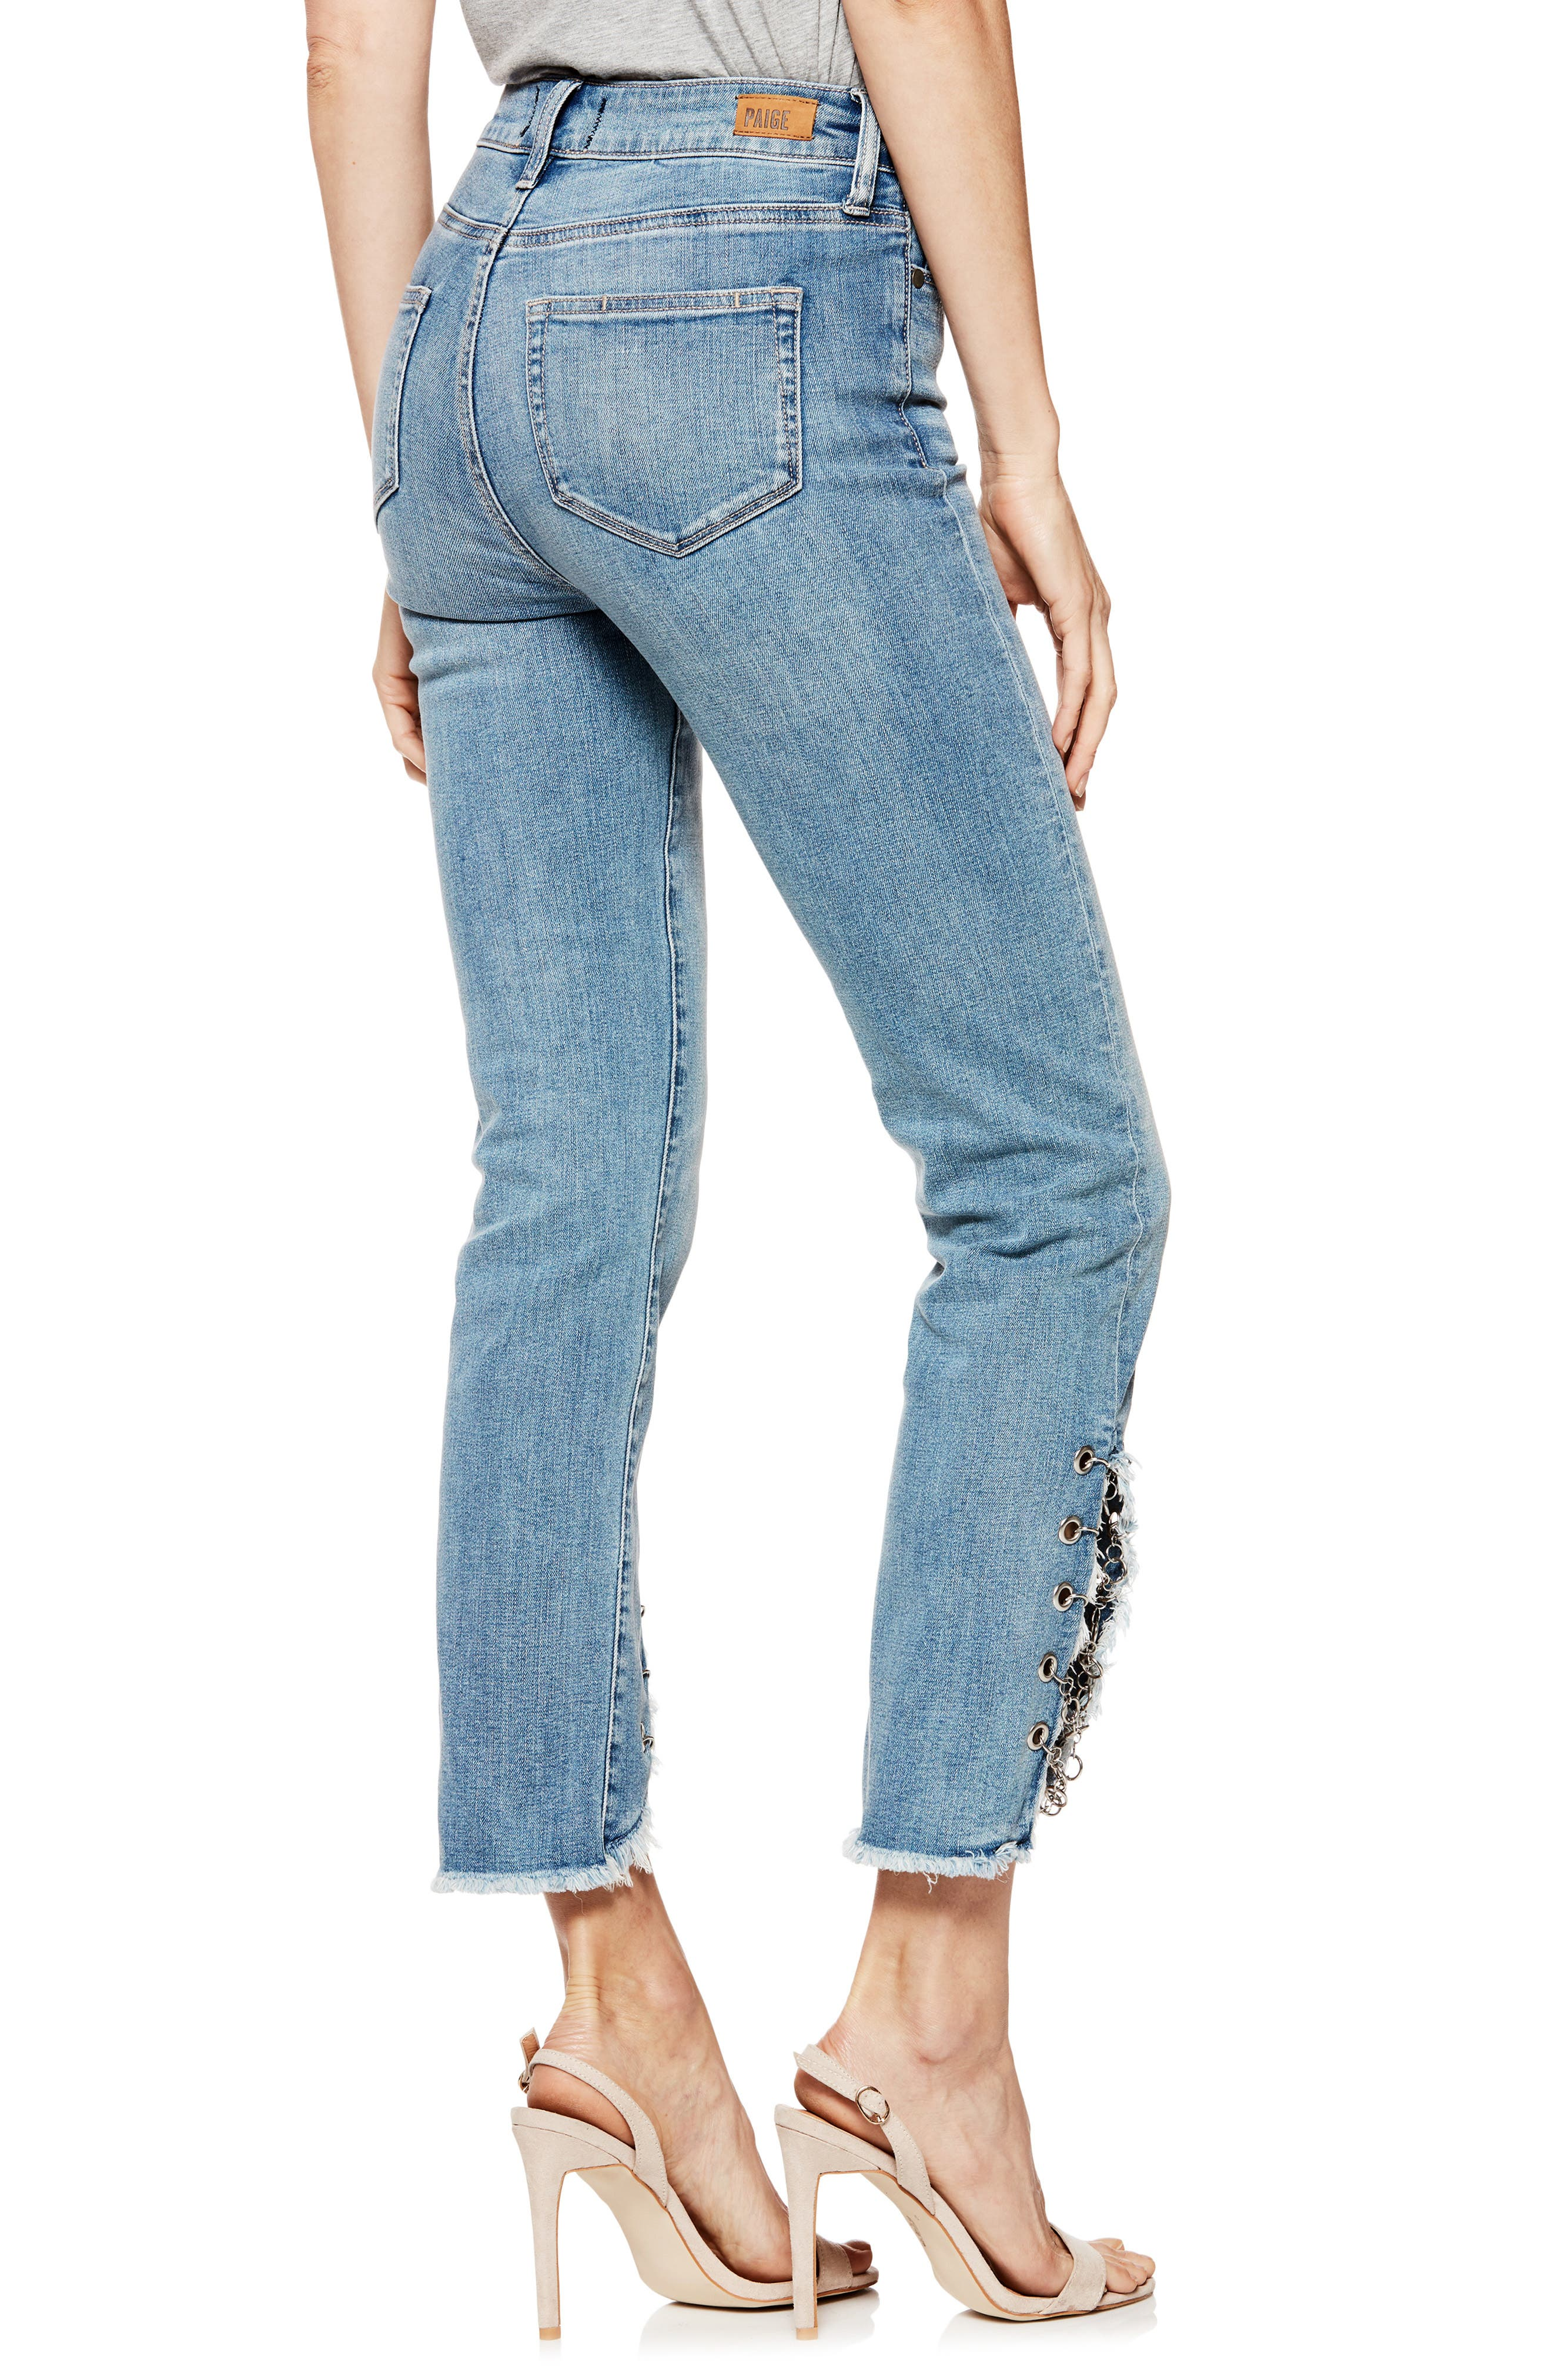 Hoxton High Waist Ankle Straight Leg Jeans,                             Alternate thumbnail 2, color,                             400